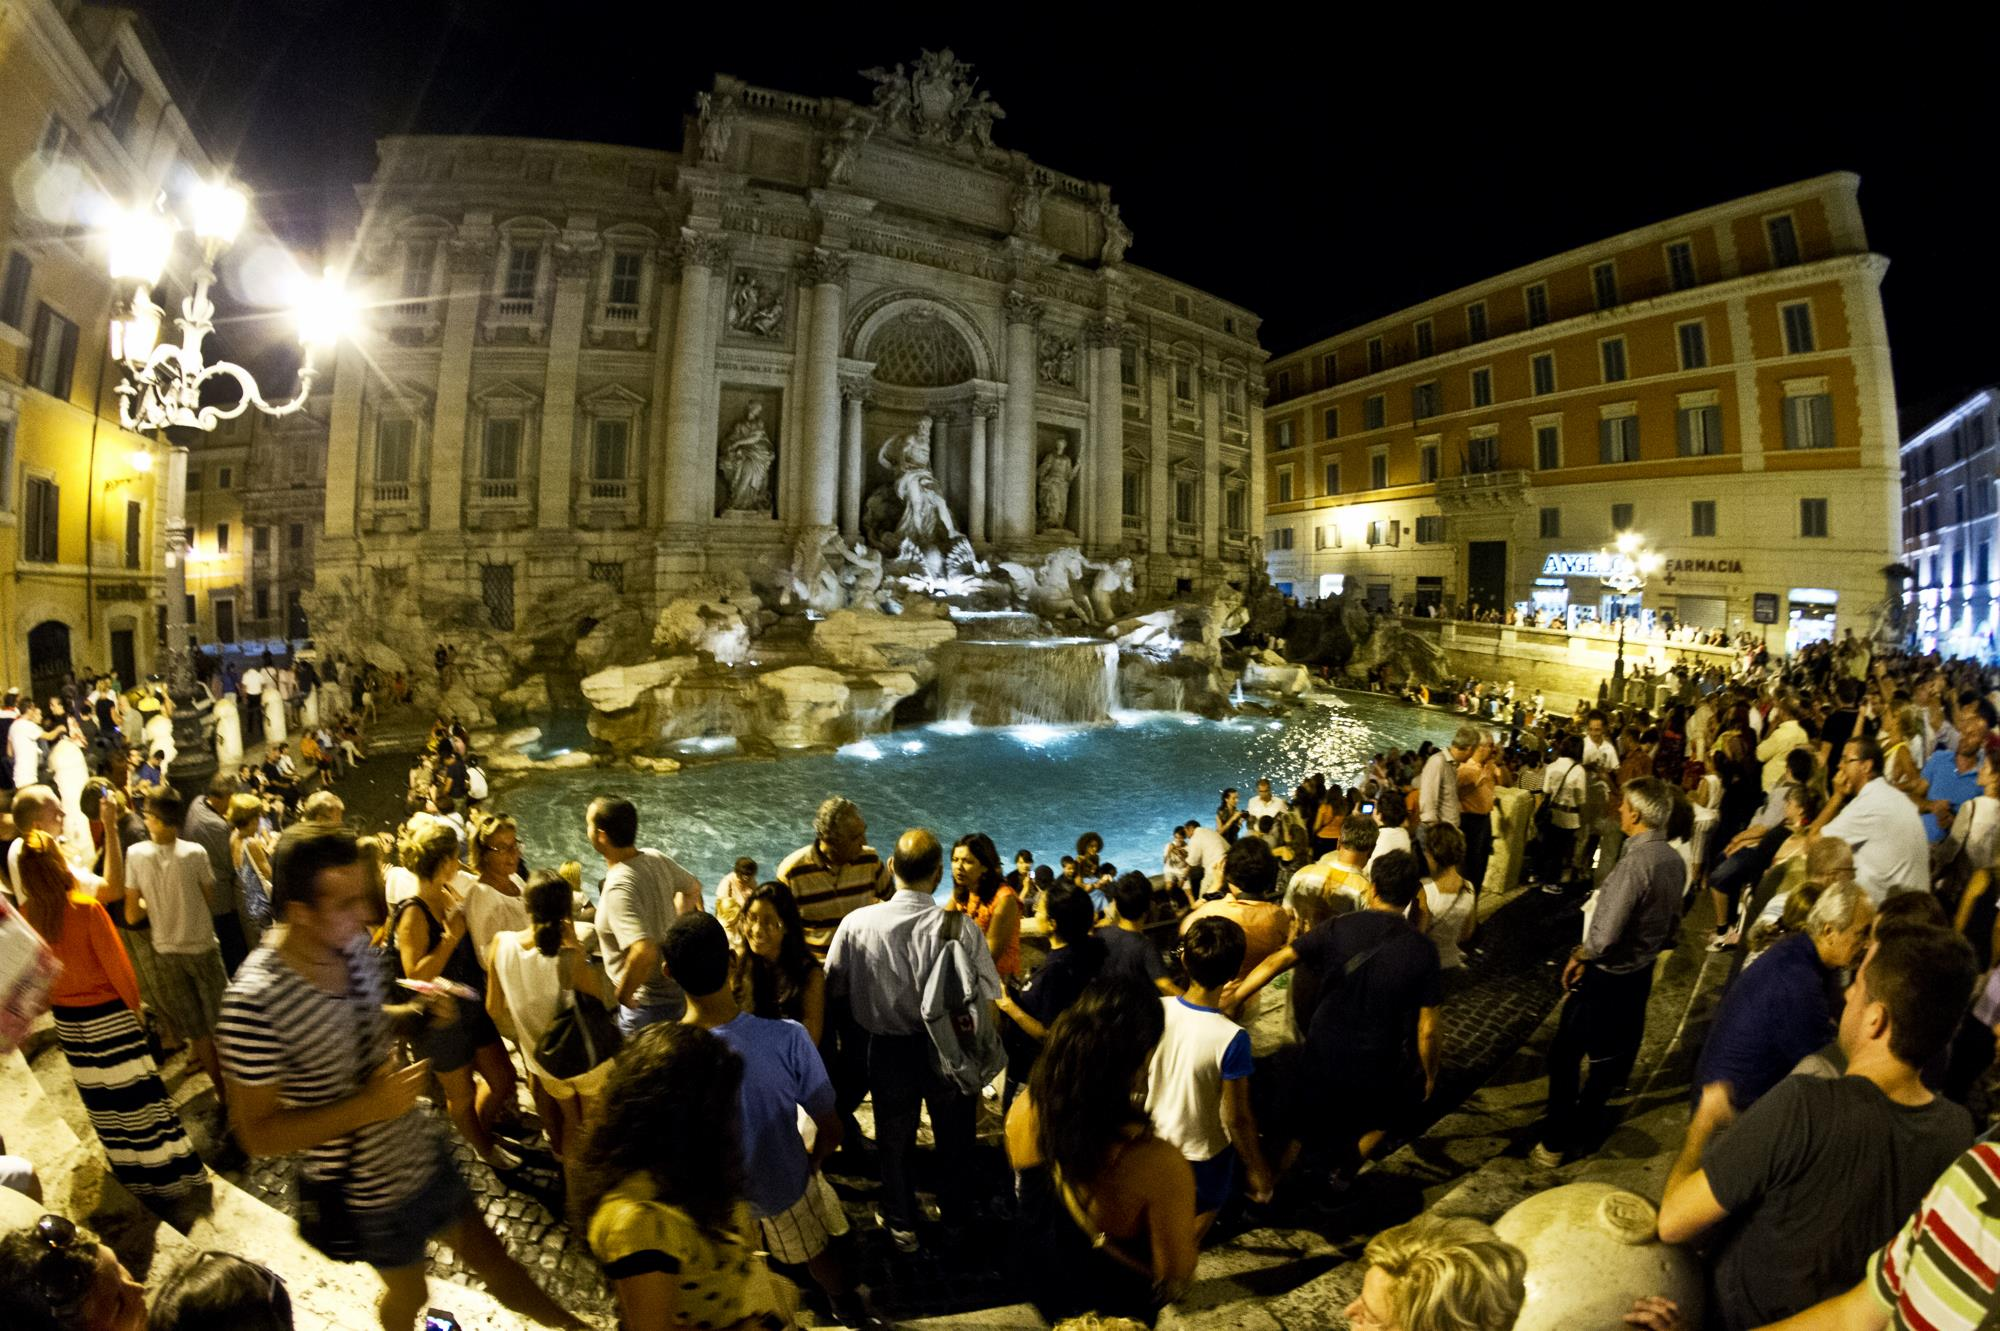 Fontanna di Trevi by night